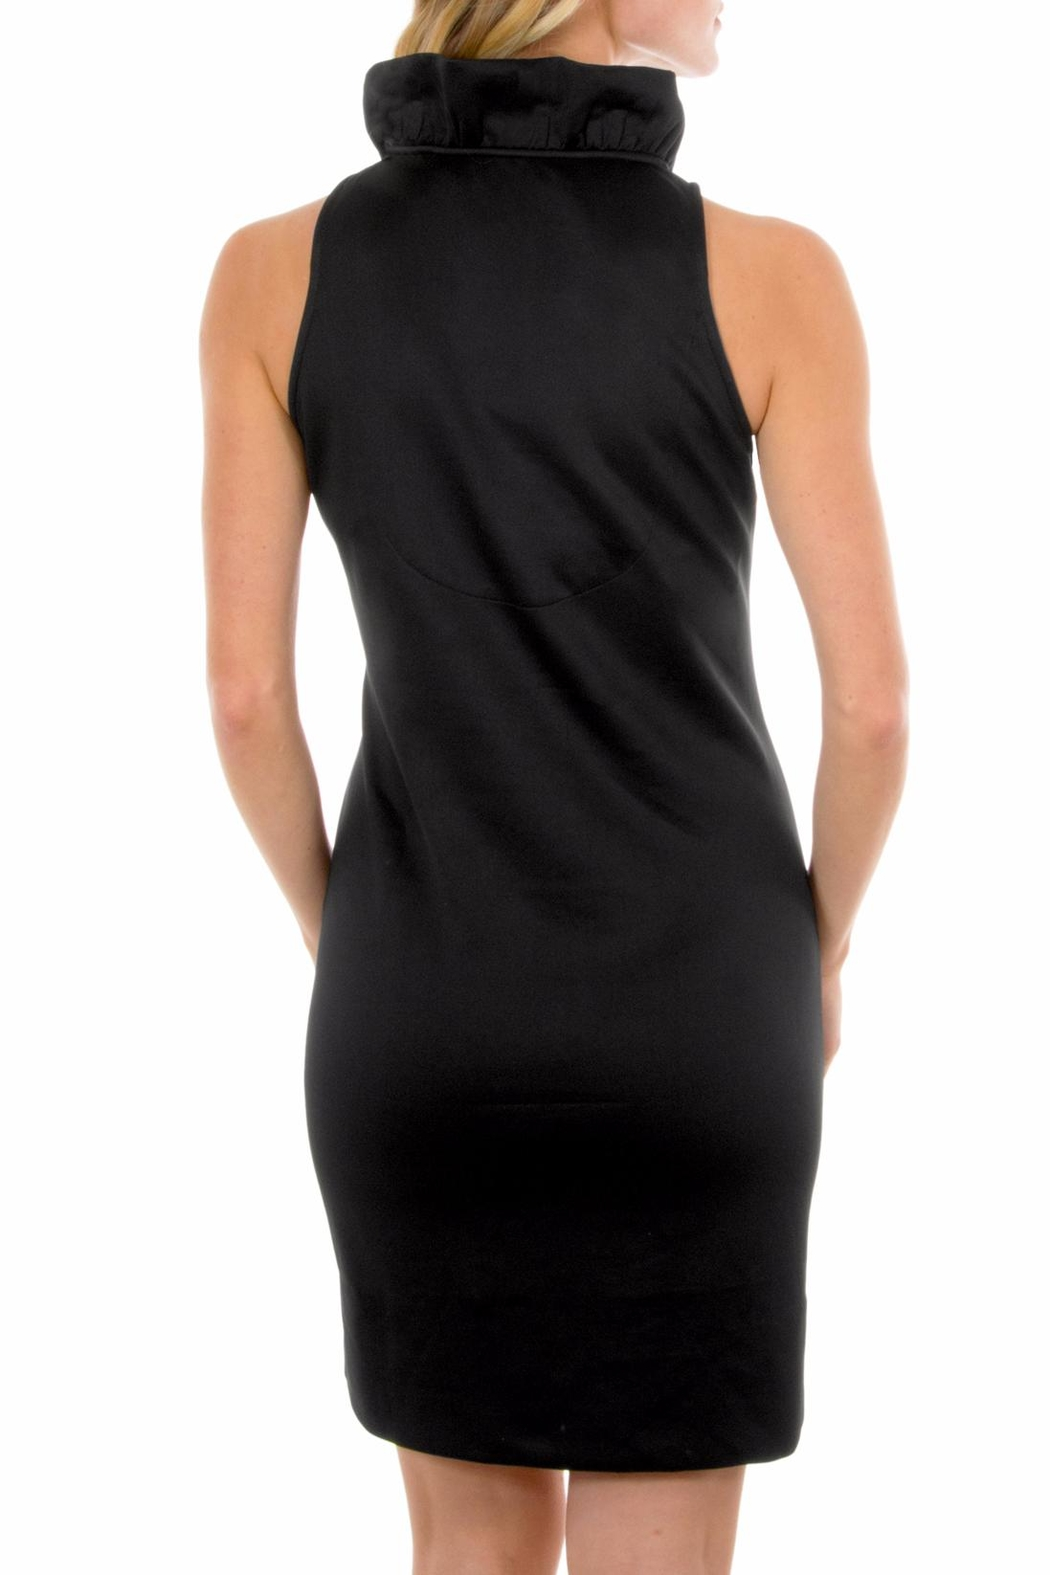 Gretchen Scott Black Sleeveless Jersey Dress - Side Cropped Image